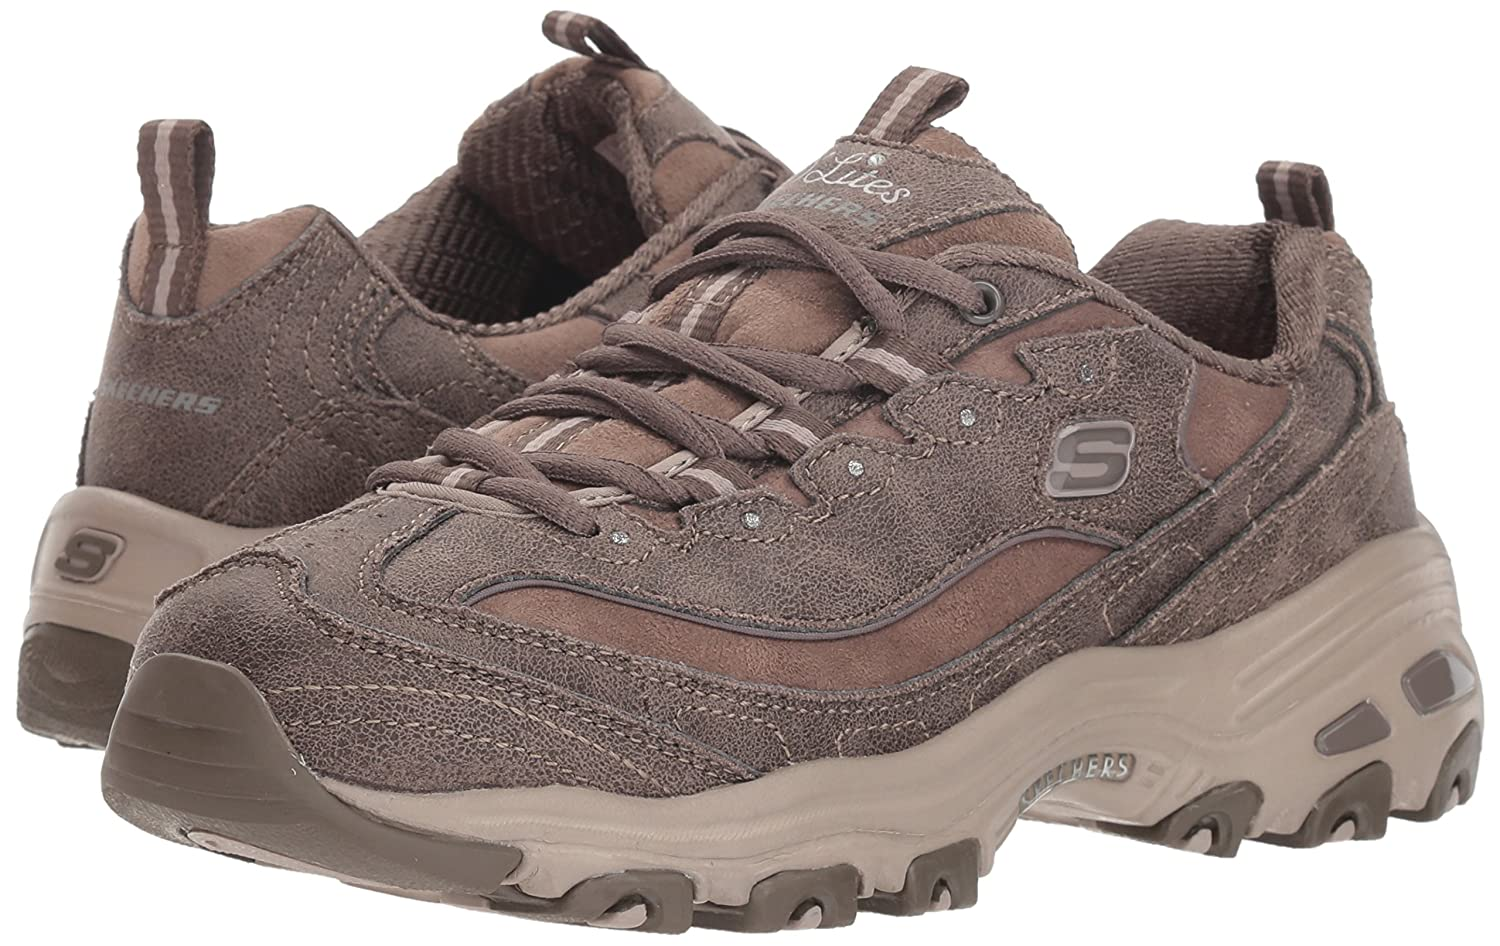 Skechers-D-039-Lites-Women-039-s-Casual-Lightweight-Fashion-Sneakers-Athletic-Shoes thumbnail 170